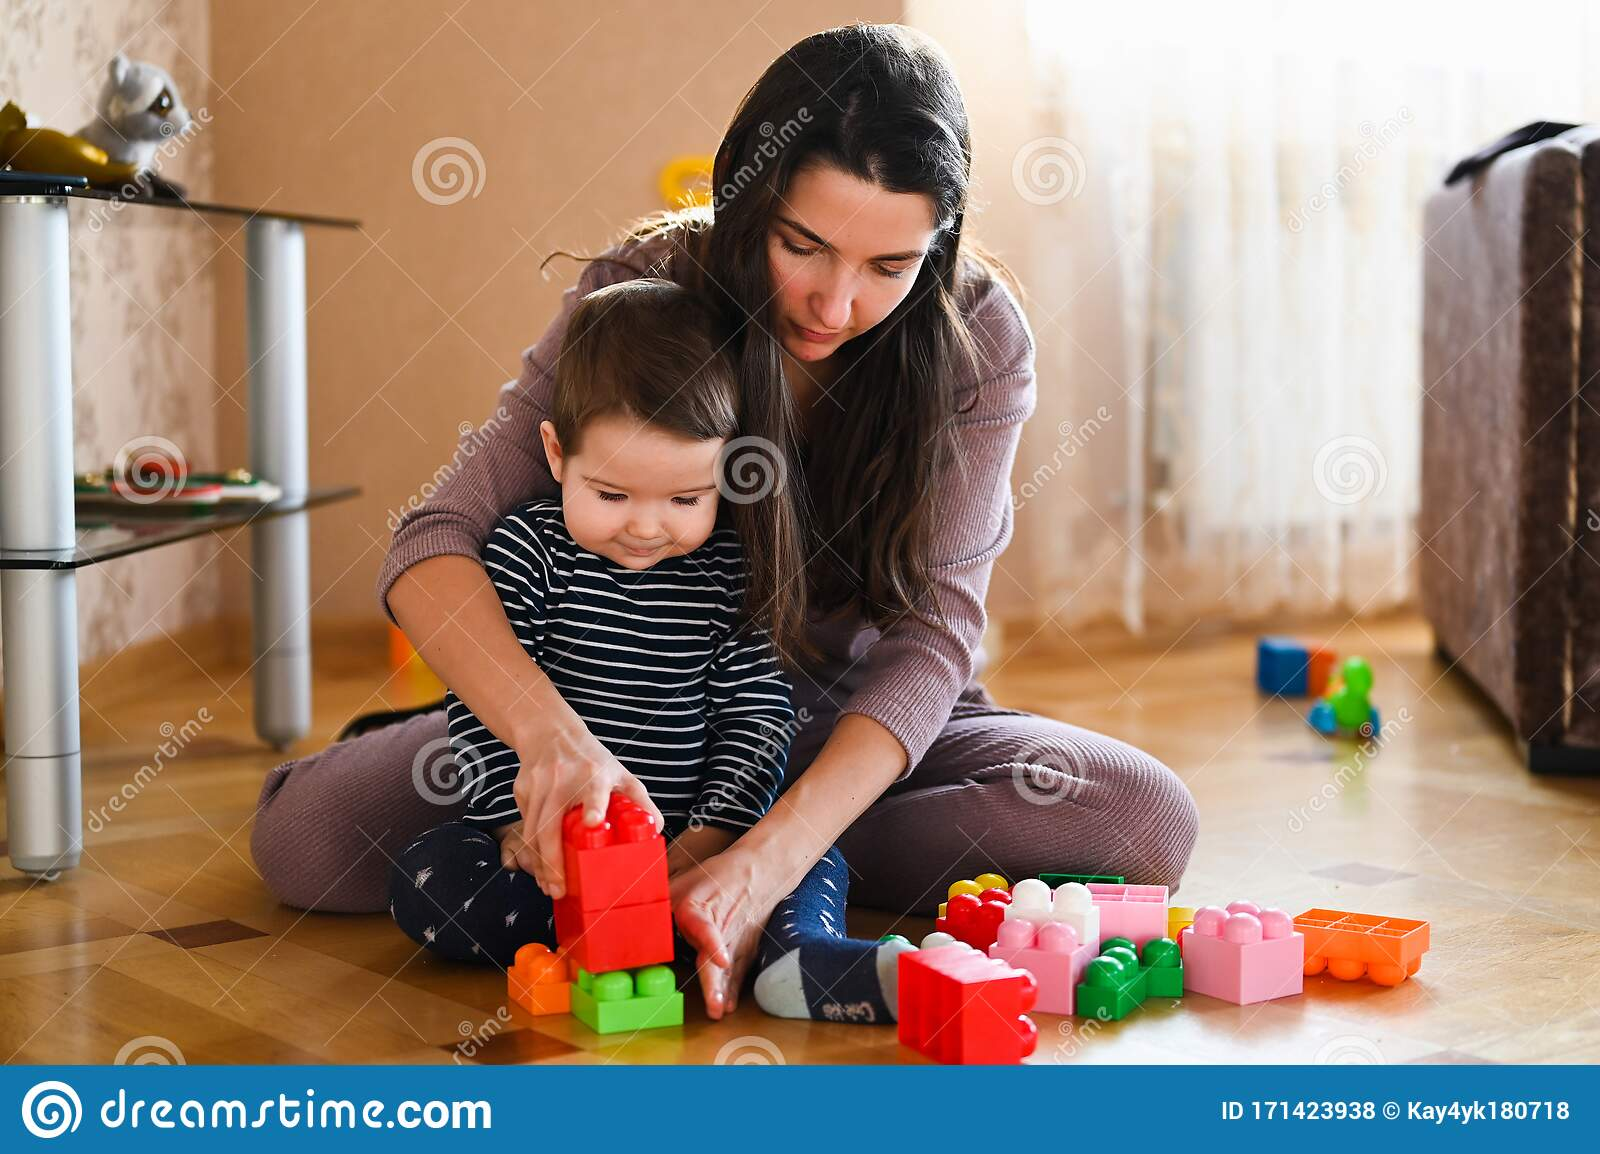 Designer Games Mom And Baby Baby Boy And Mother Playing Together